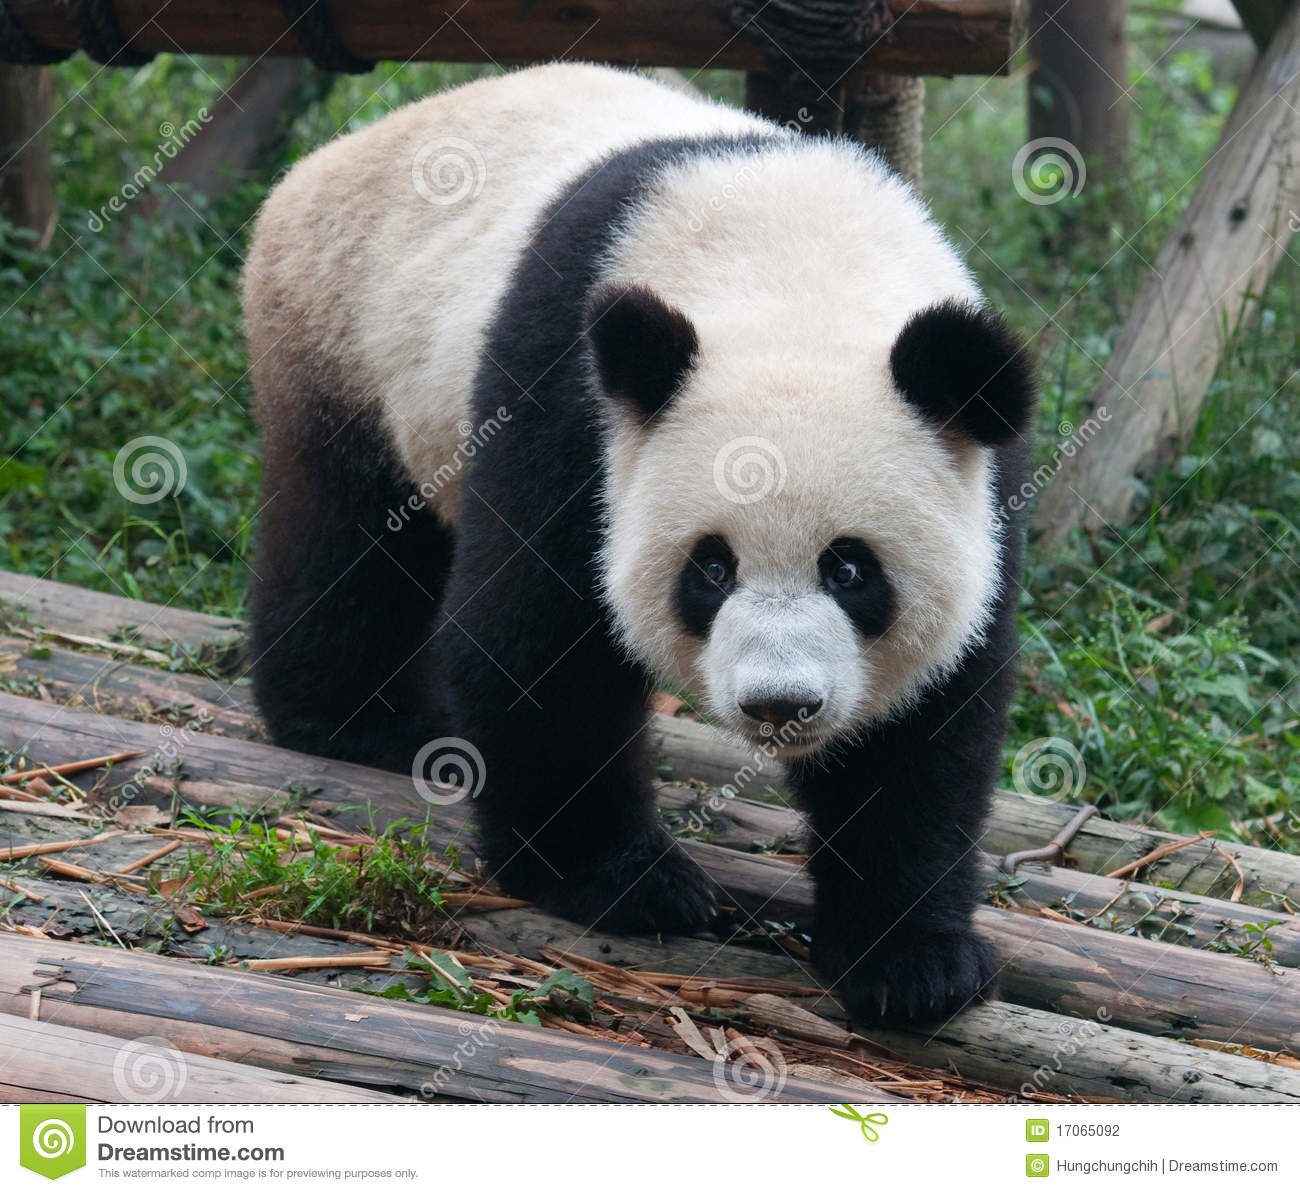 Cute giant panda bear stock photo. Image of jungle, fund ... - photo#31